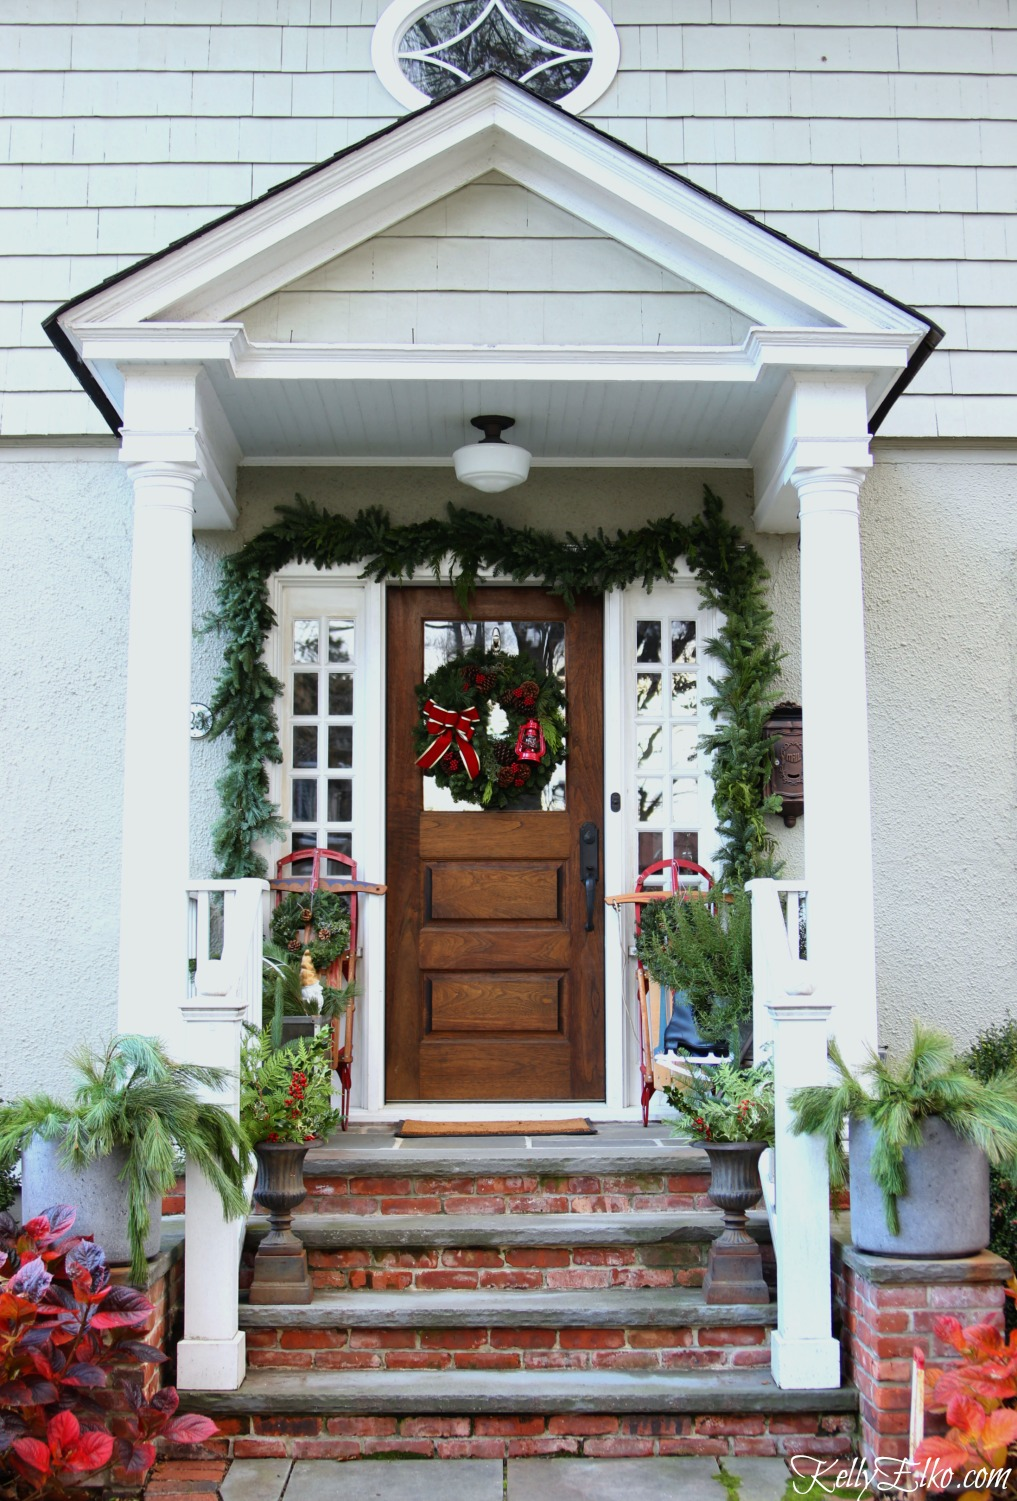 Beautiful Christmas porch with vintage sleds and lush fresh greens kellyelko.com